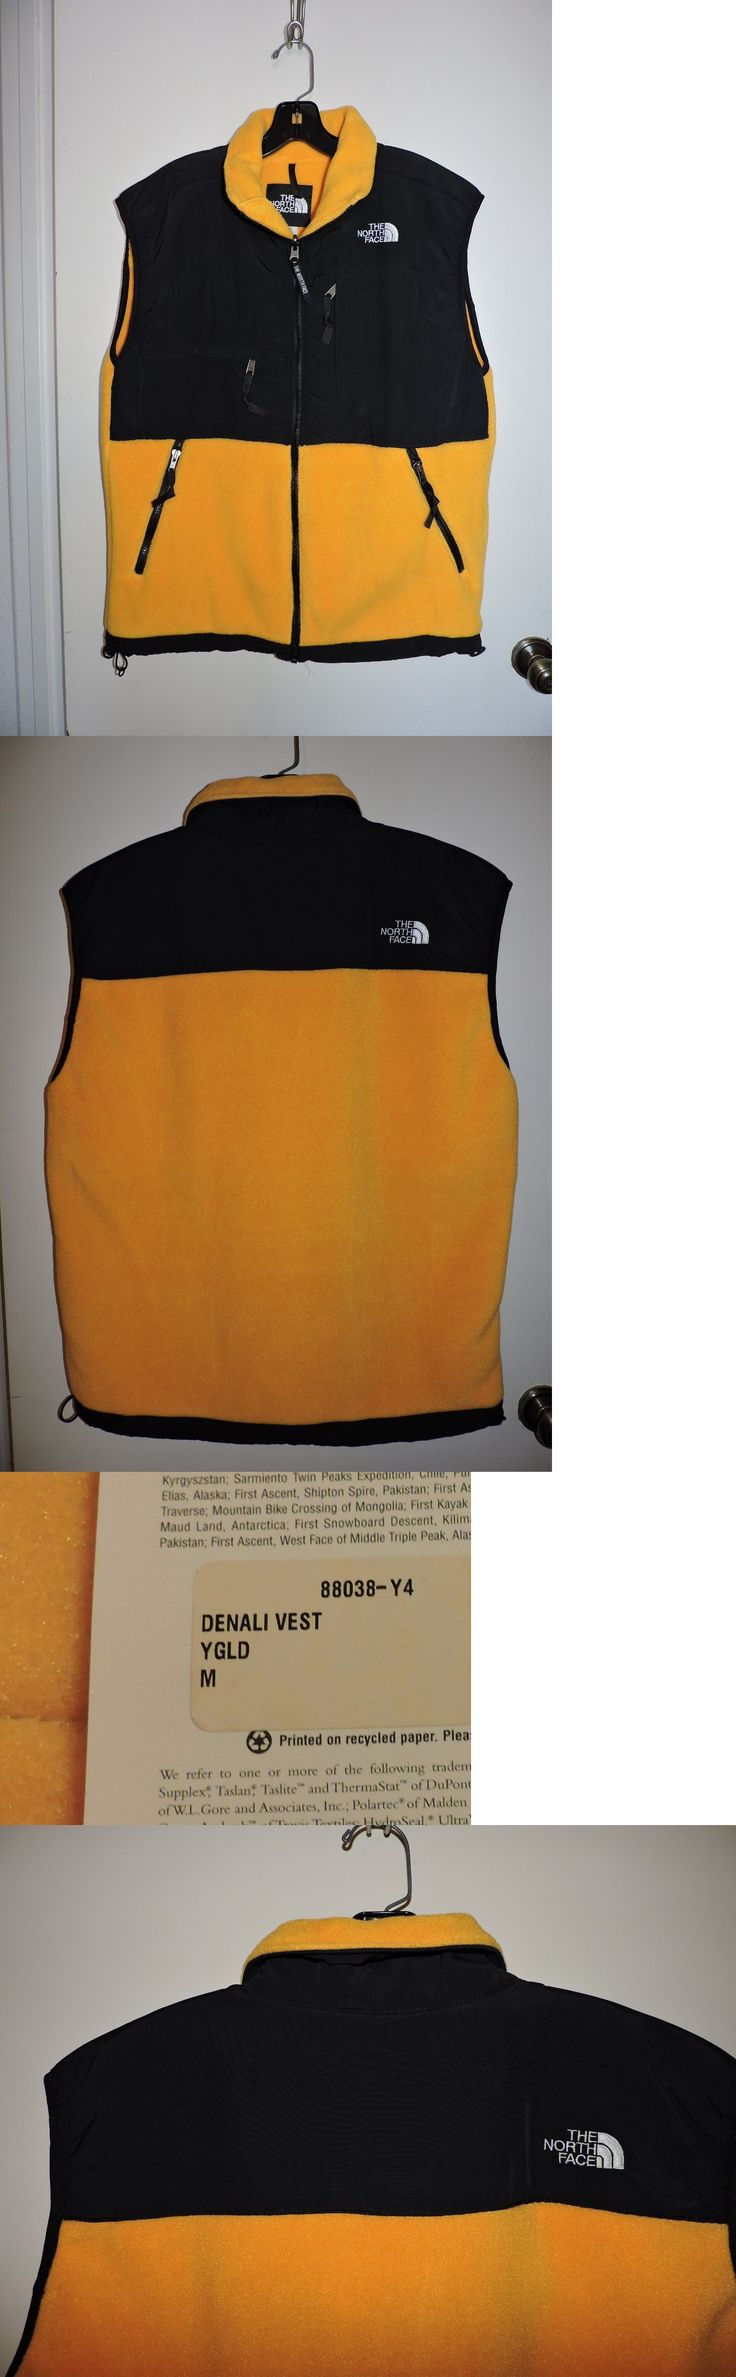 Vests 179012: Mens Medium The North Face Denali Fleece Vest New With Tags Yellow Gold -> BUY IT NOW ONLY: $69.99 on eBay!